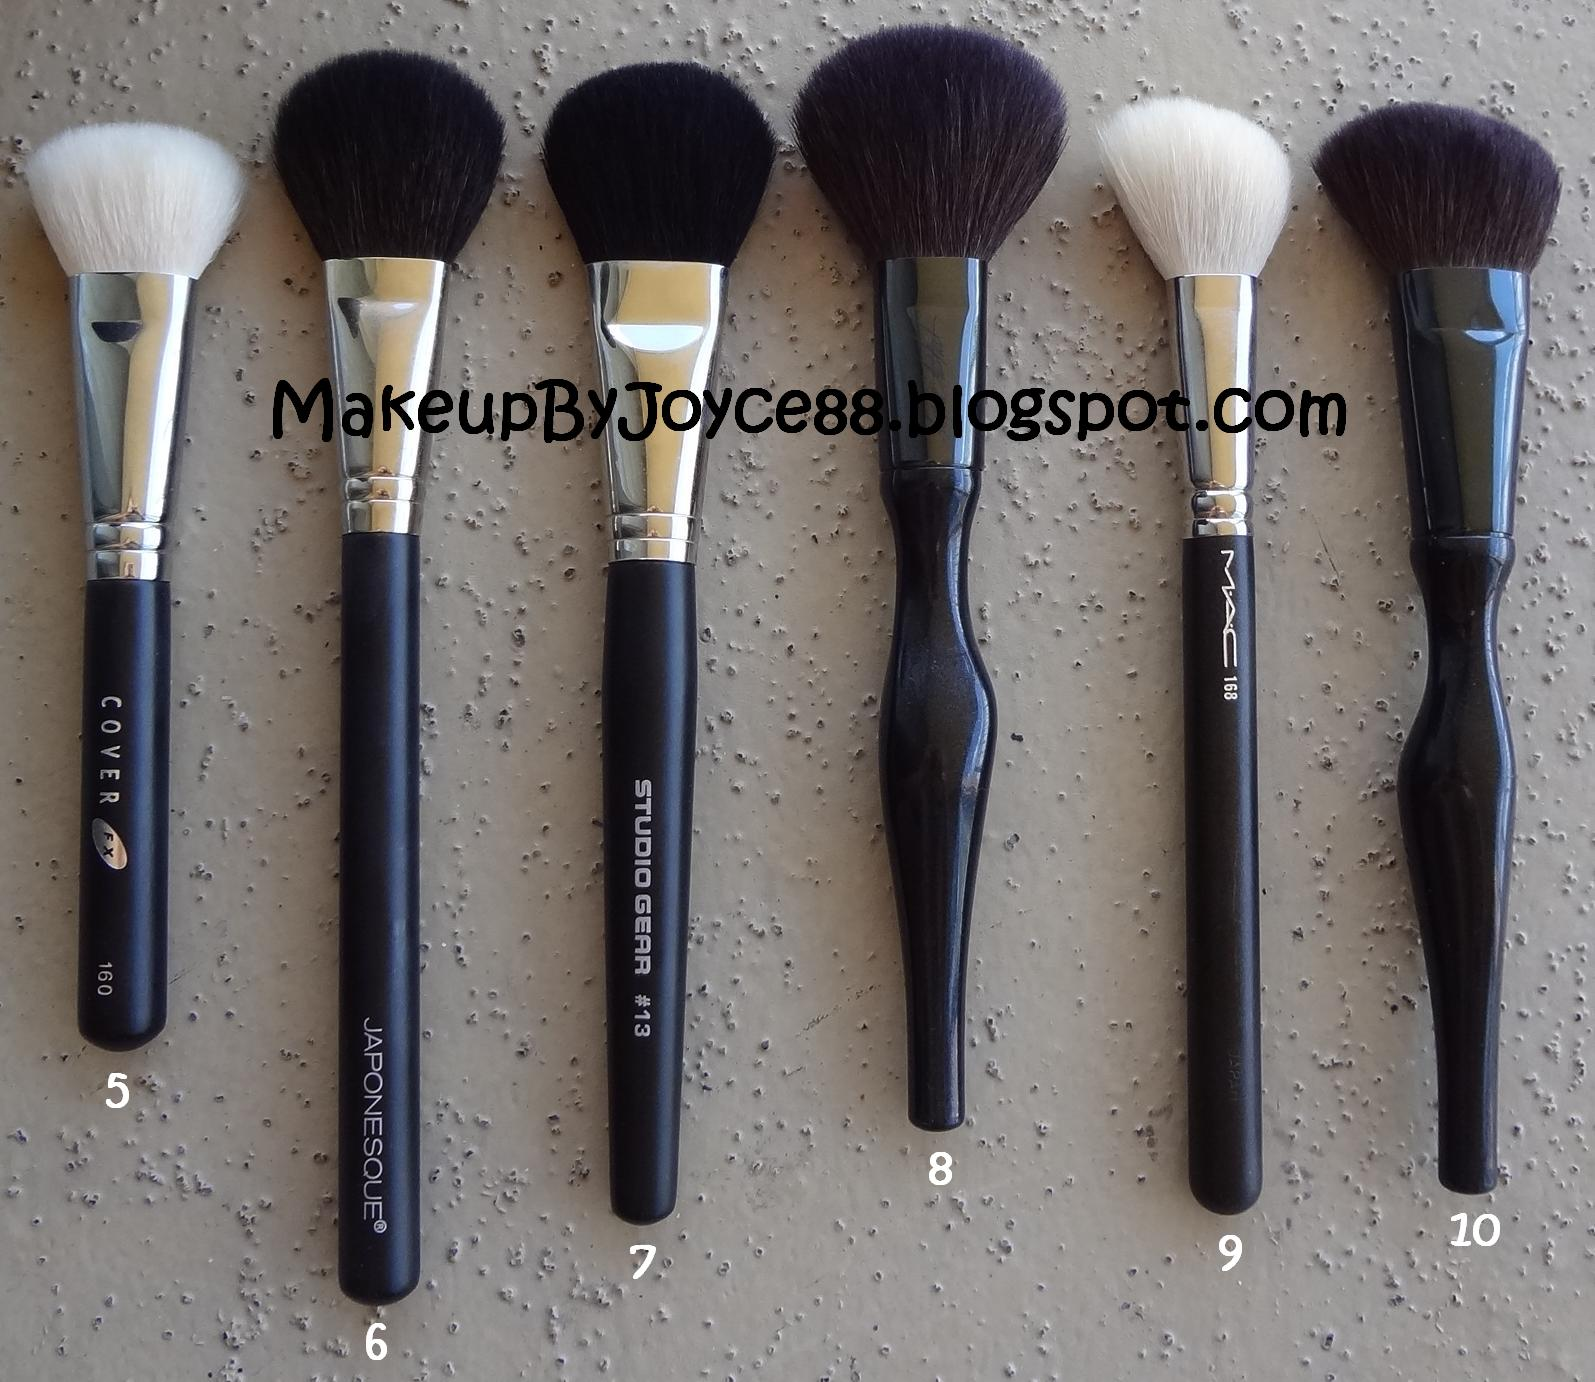 MakeupByJoyce ** !: Overview: Brush Collection